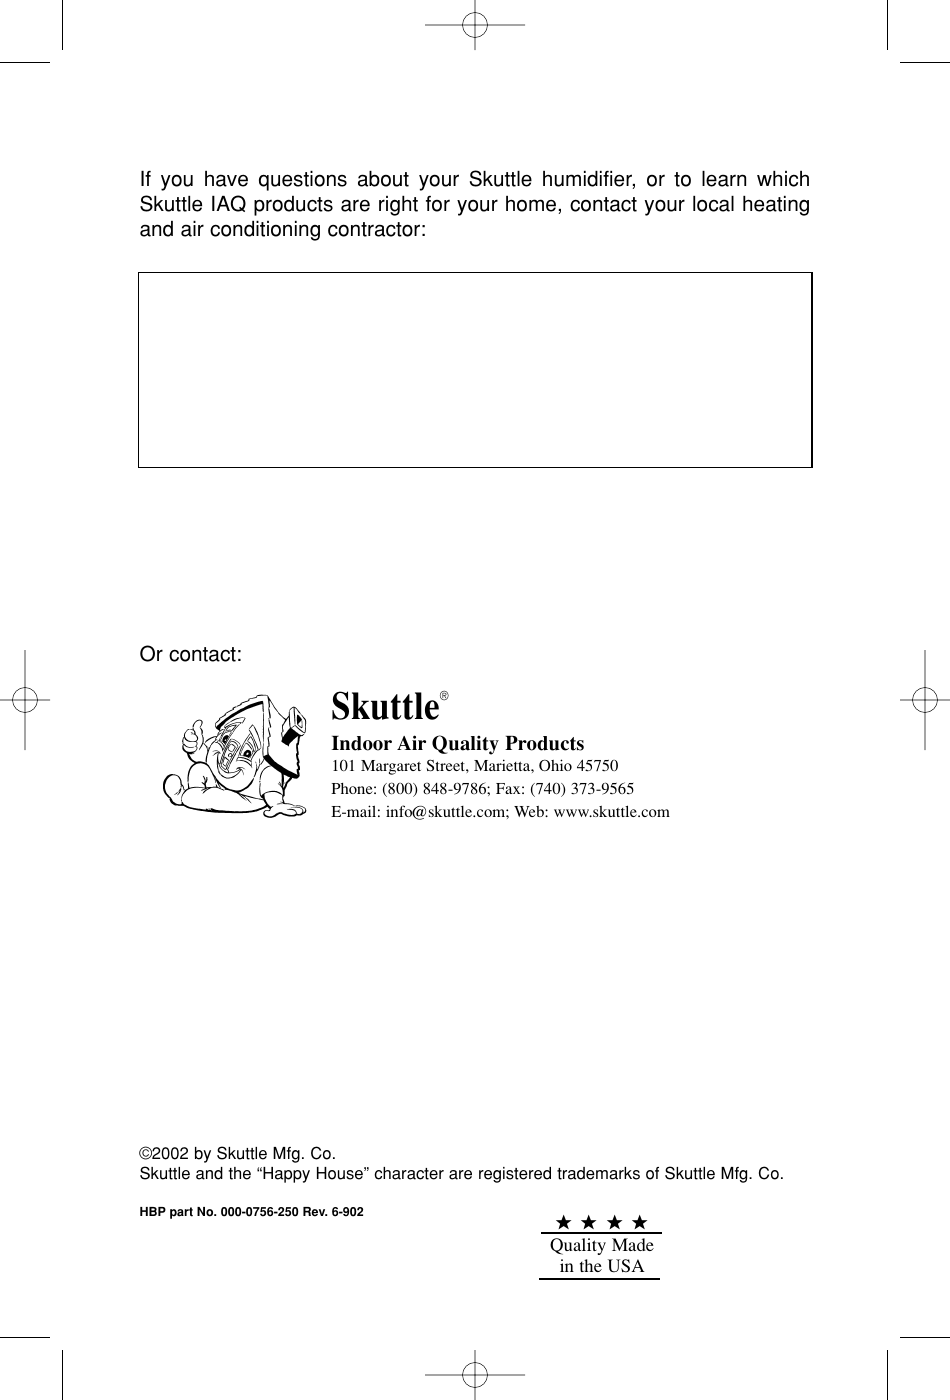 Skuttle Indoor Air Quality Products 45 Users Manual 20554 Owners